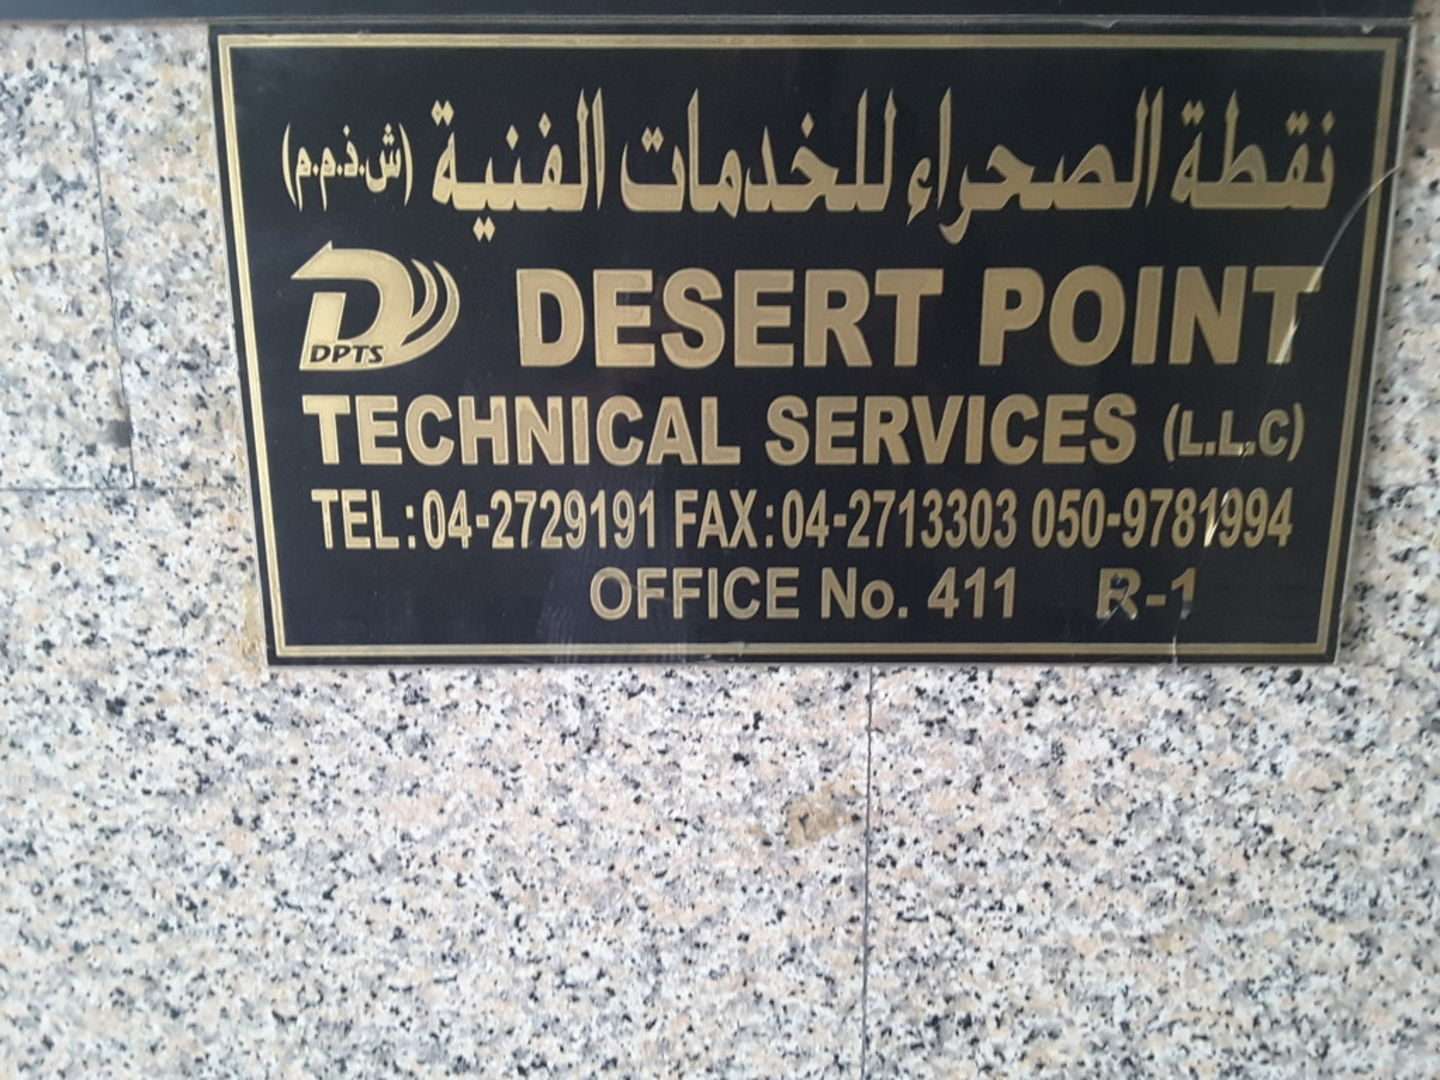 Walif-business-desert-point-technical-services